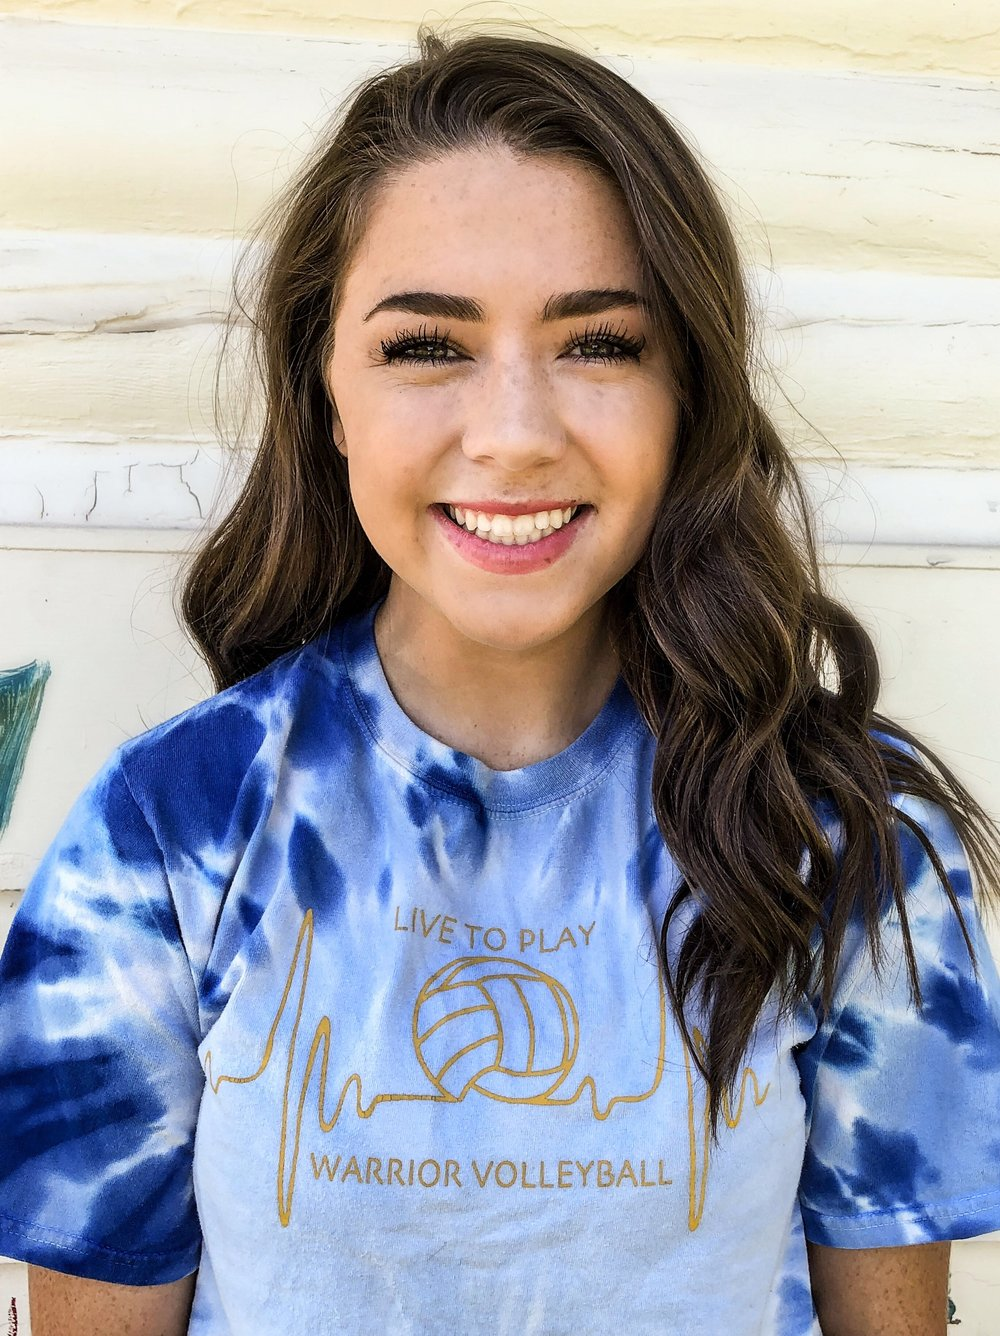 Kaybree - Kaybree is 17 years old and goes to Weldon Valley High School. She really enjoys playing volleyball and basketball in her free time! This is her second year working with KATB. She loves the staff and getting to know all the kids we work with!